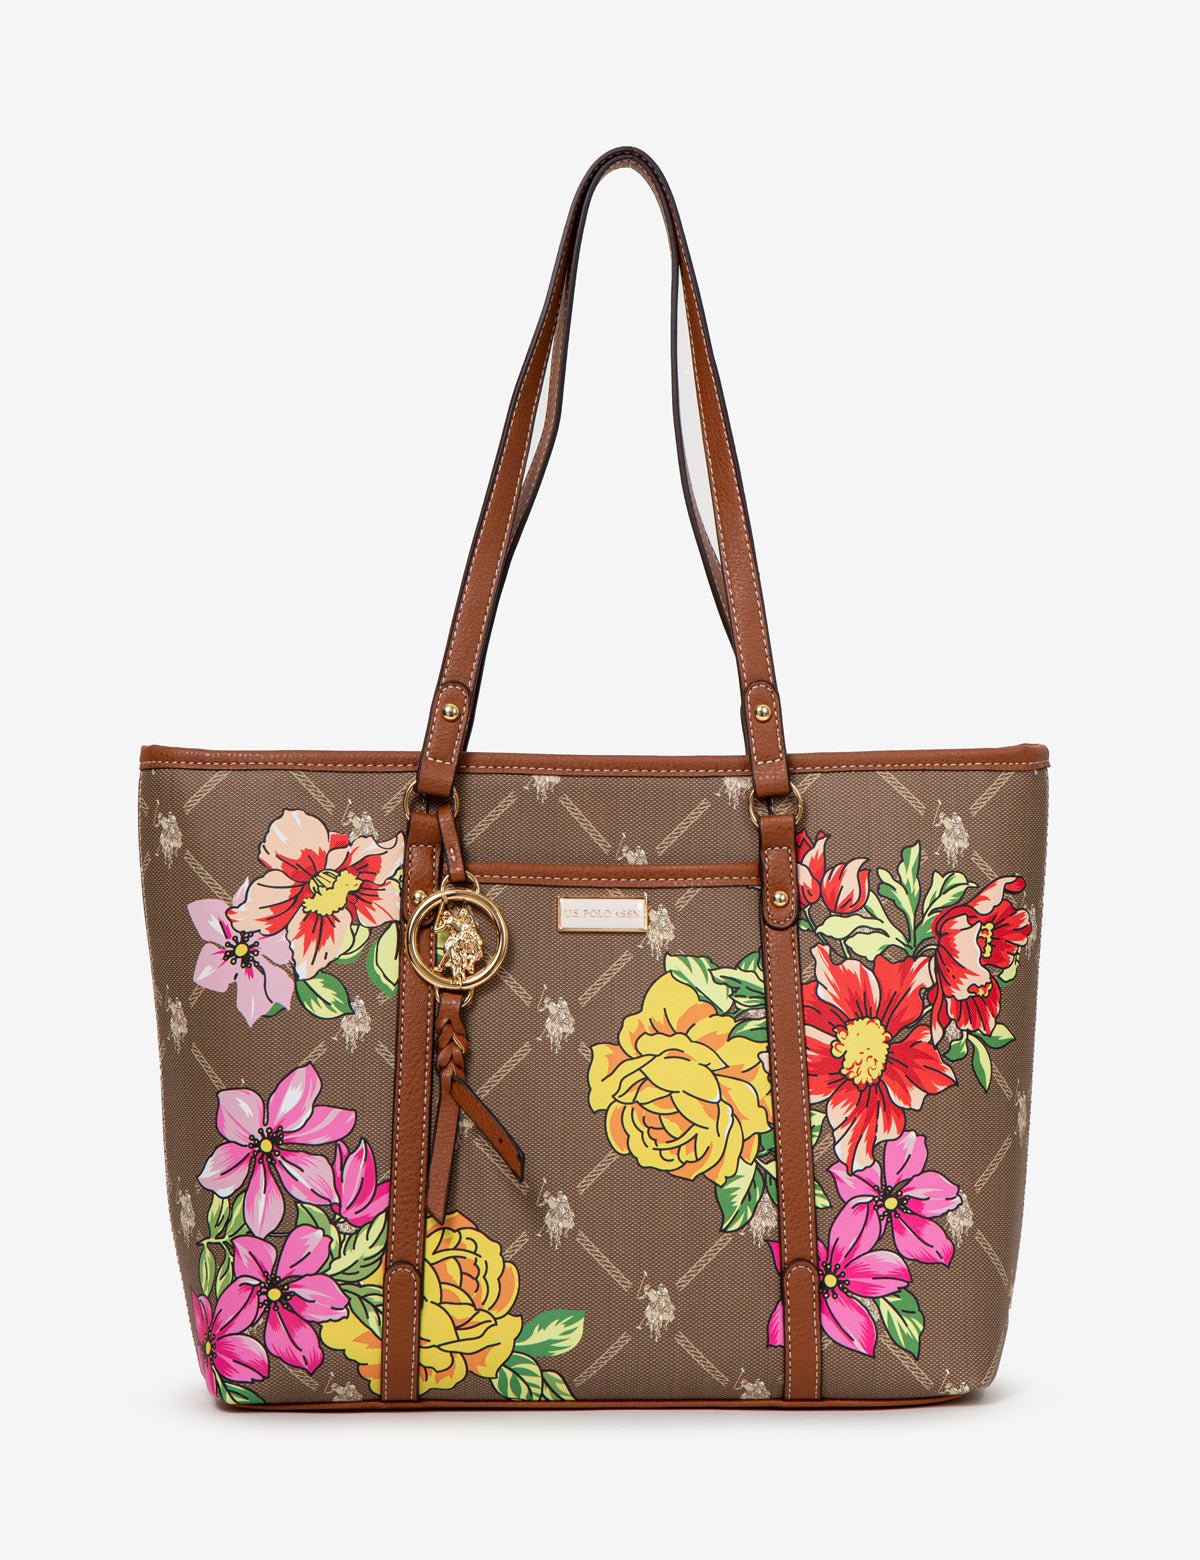 FLORAL SIGNATURE TOTE BAG - U.S. Polo Assn.